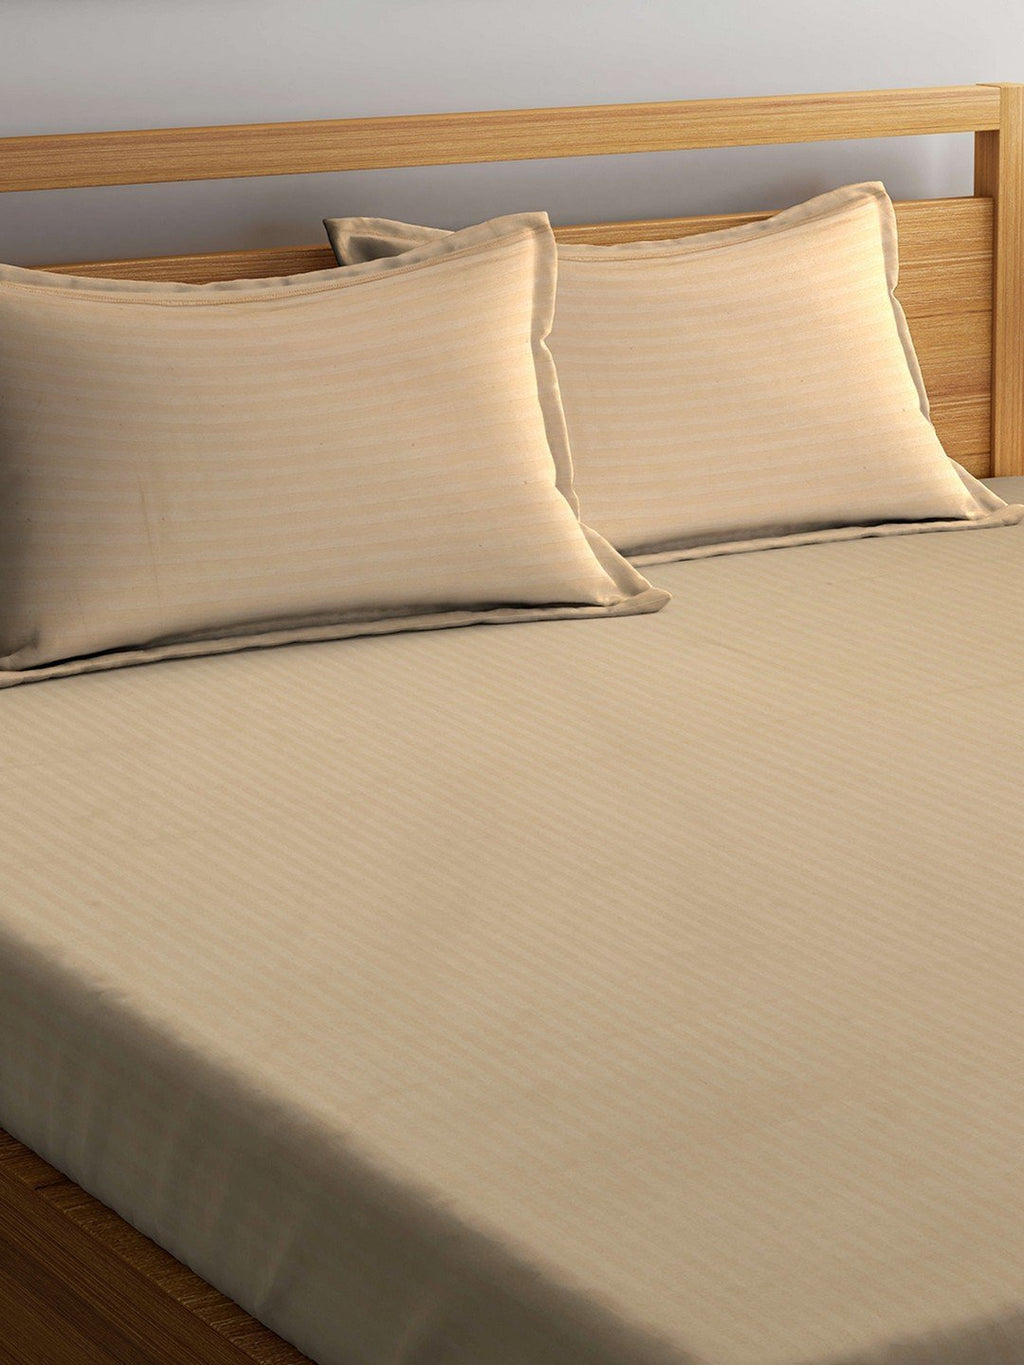 double bedsheets online,cotton double bedsheets online india,bedsheets online,low price bed sheets